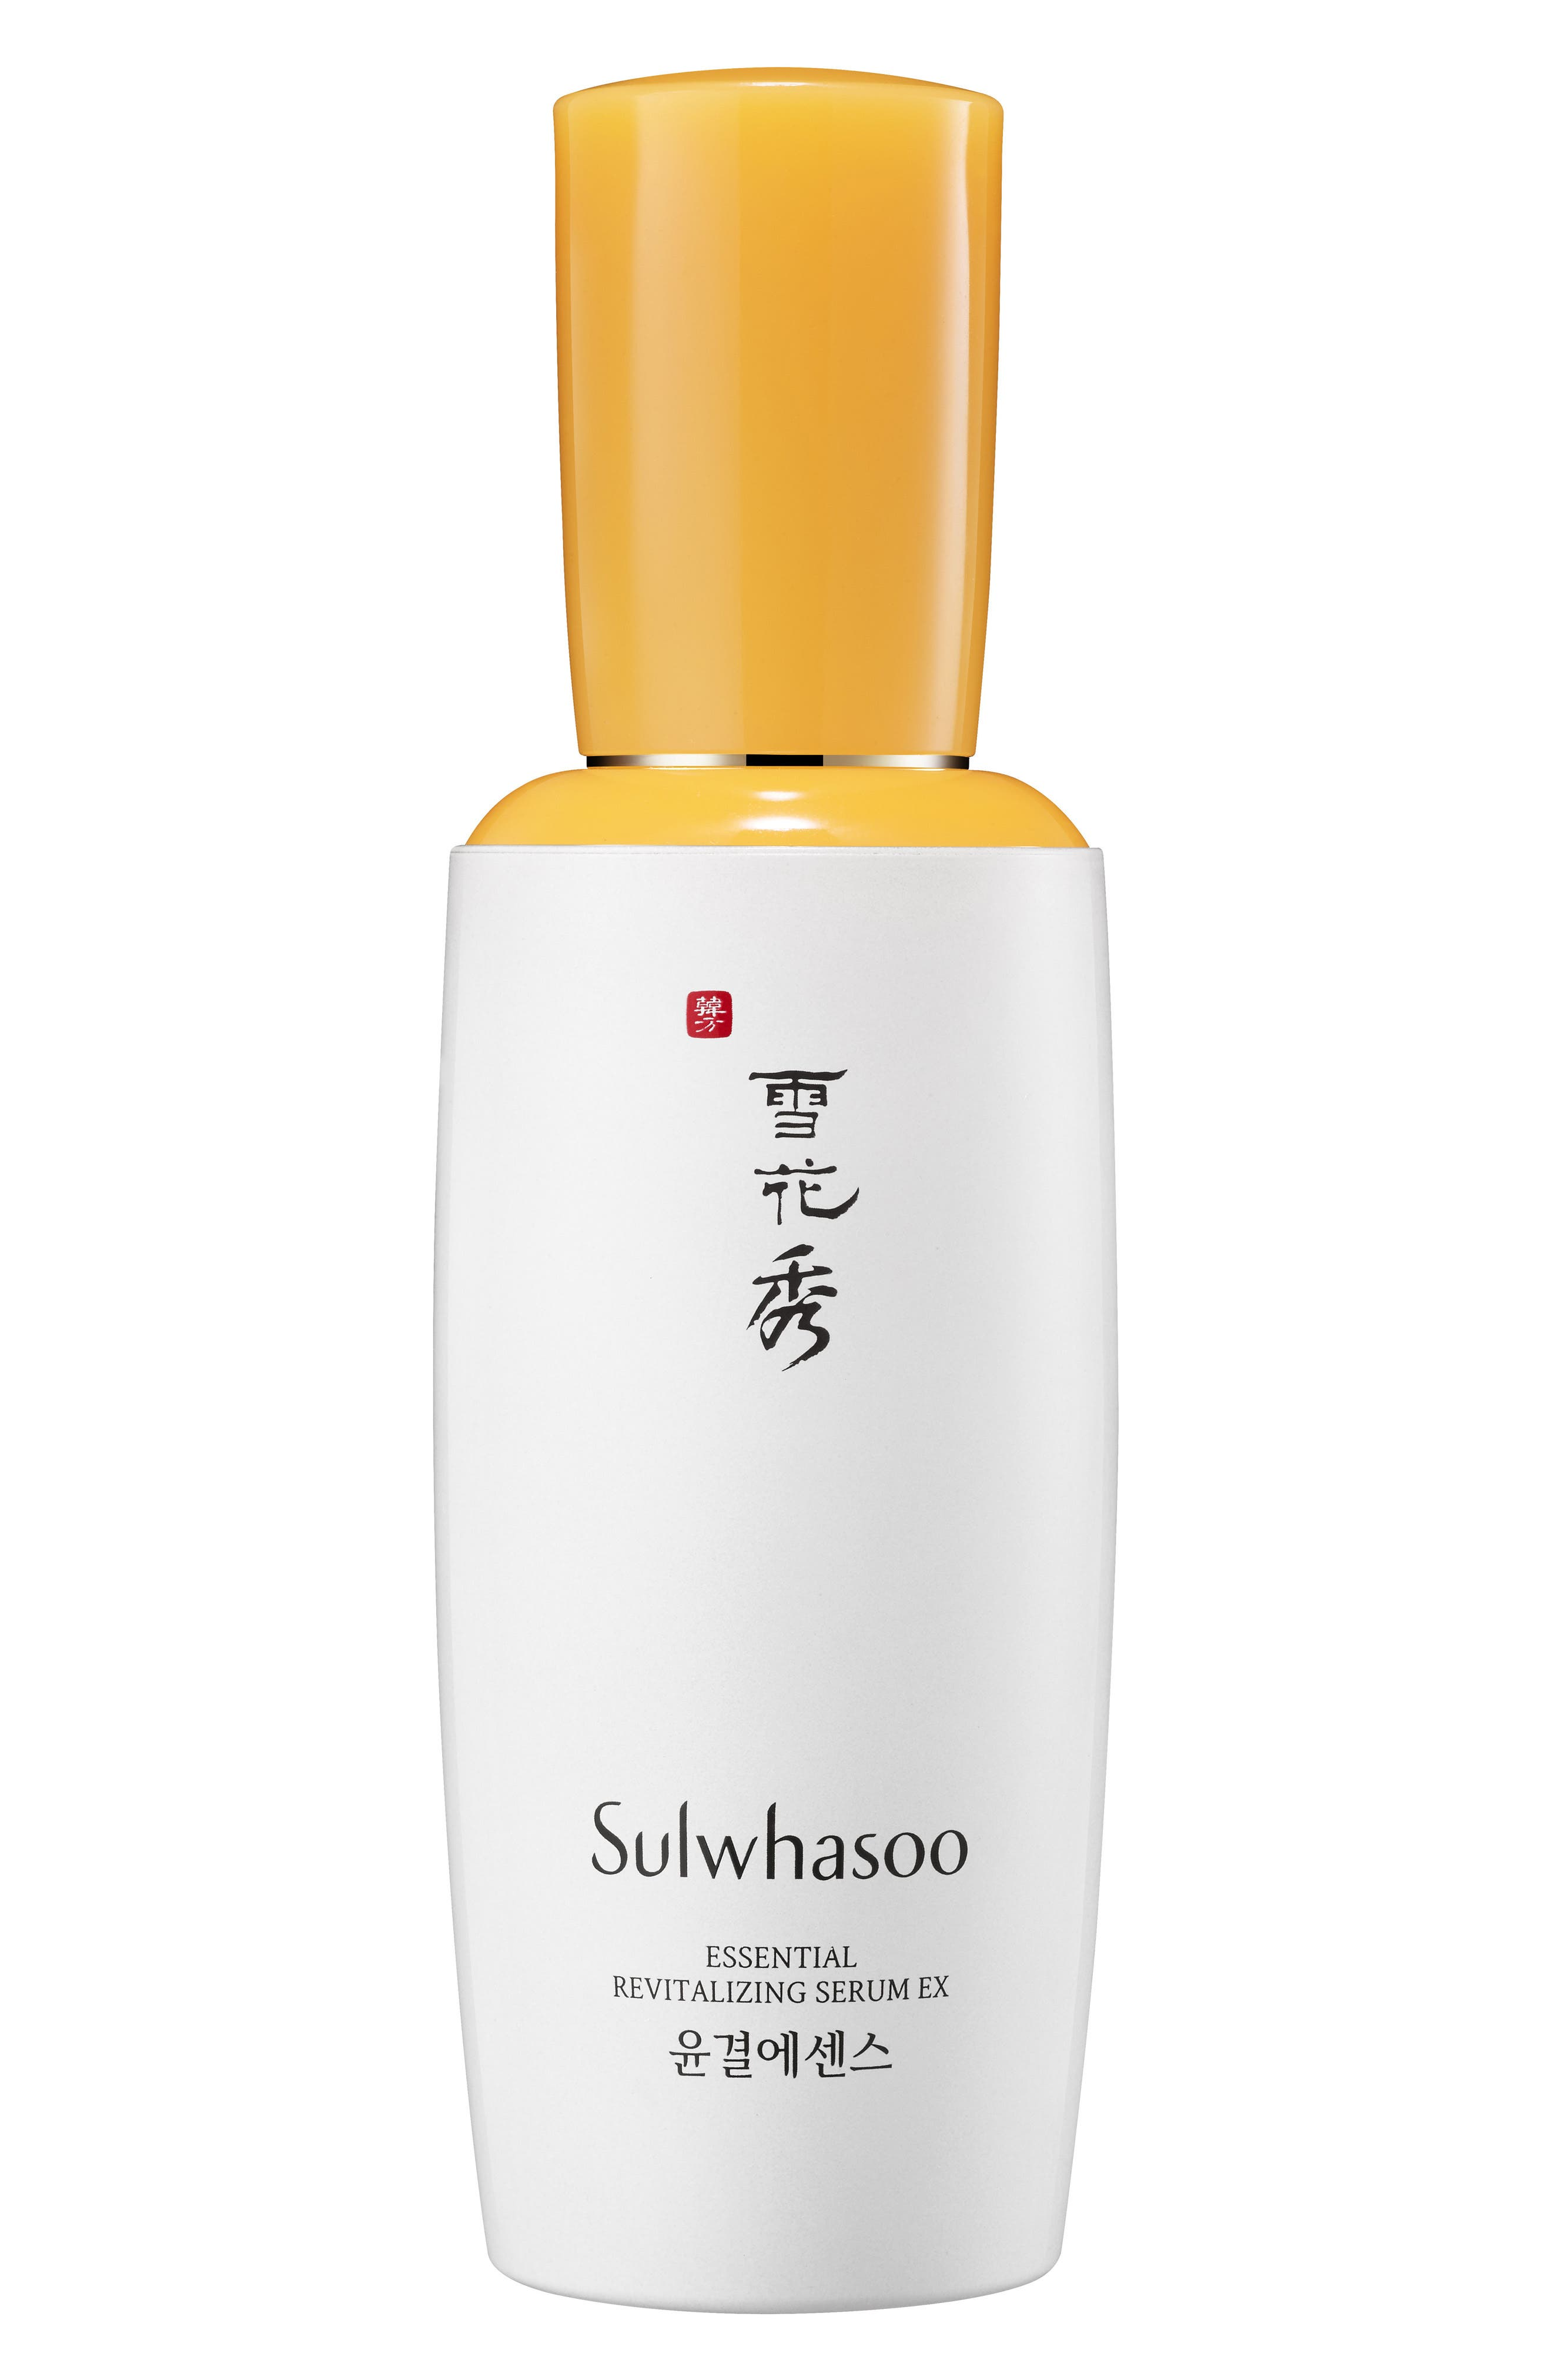 Alternate Image 1 Selected - Sulwhasoo Essential Revitalizing Serum EX